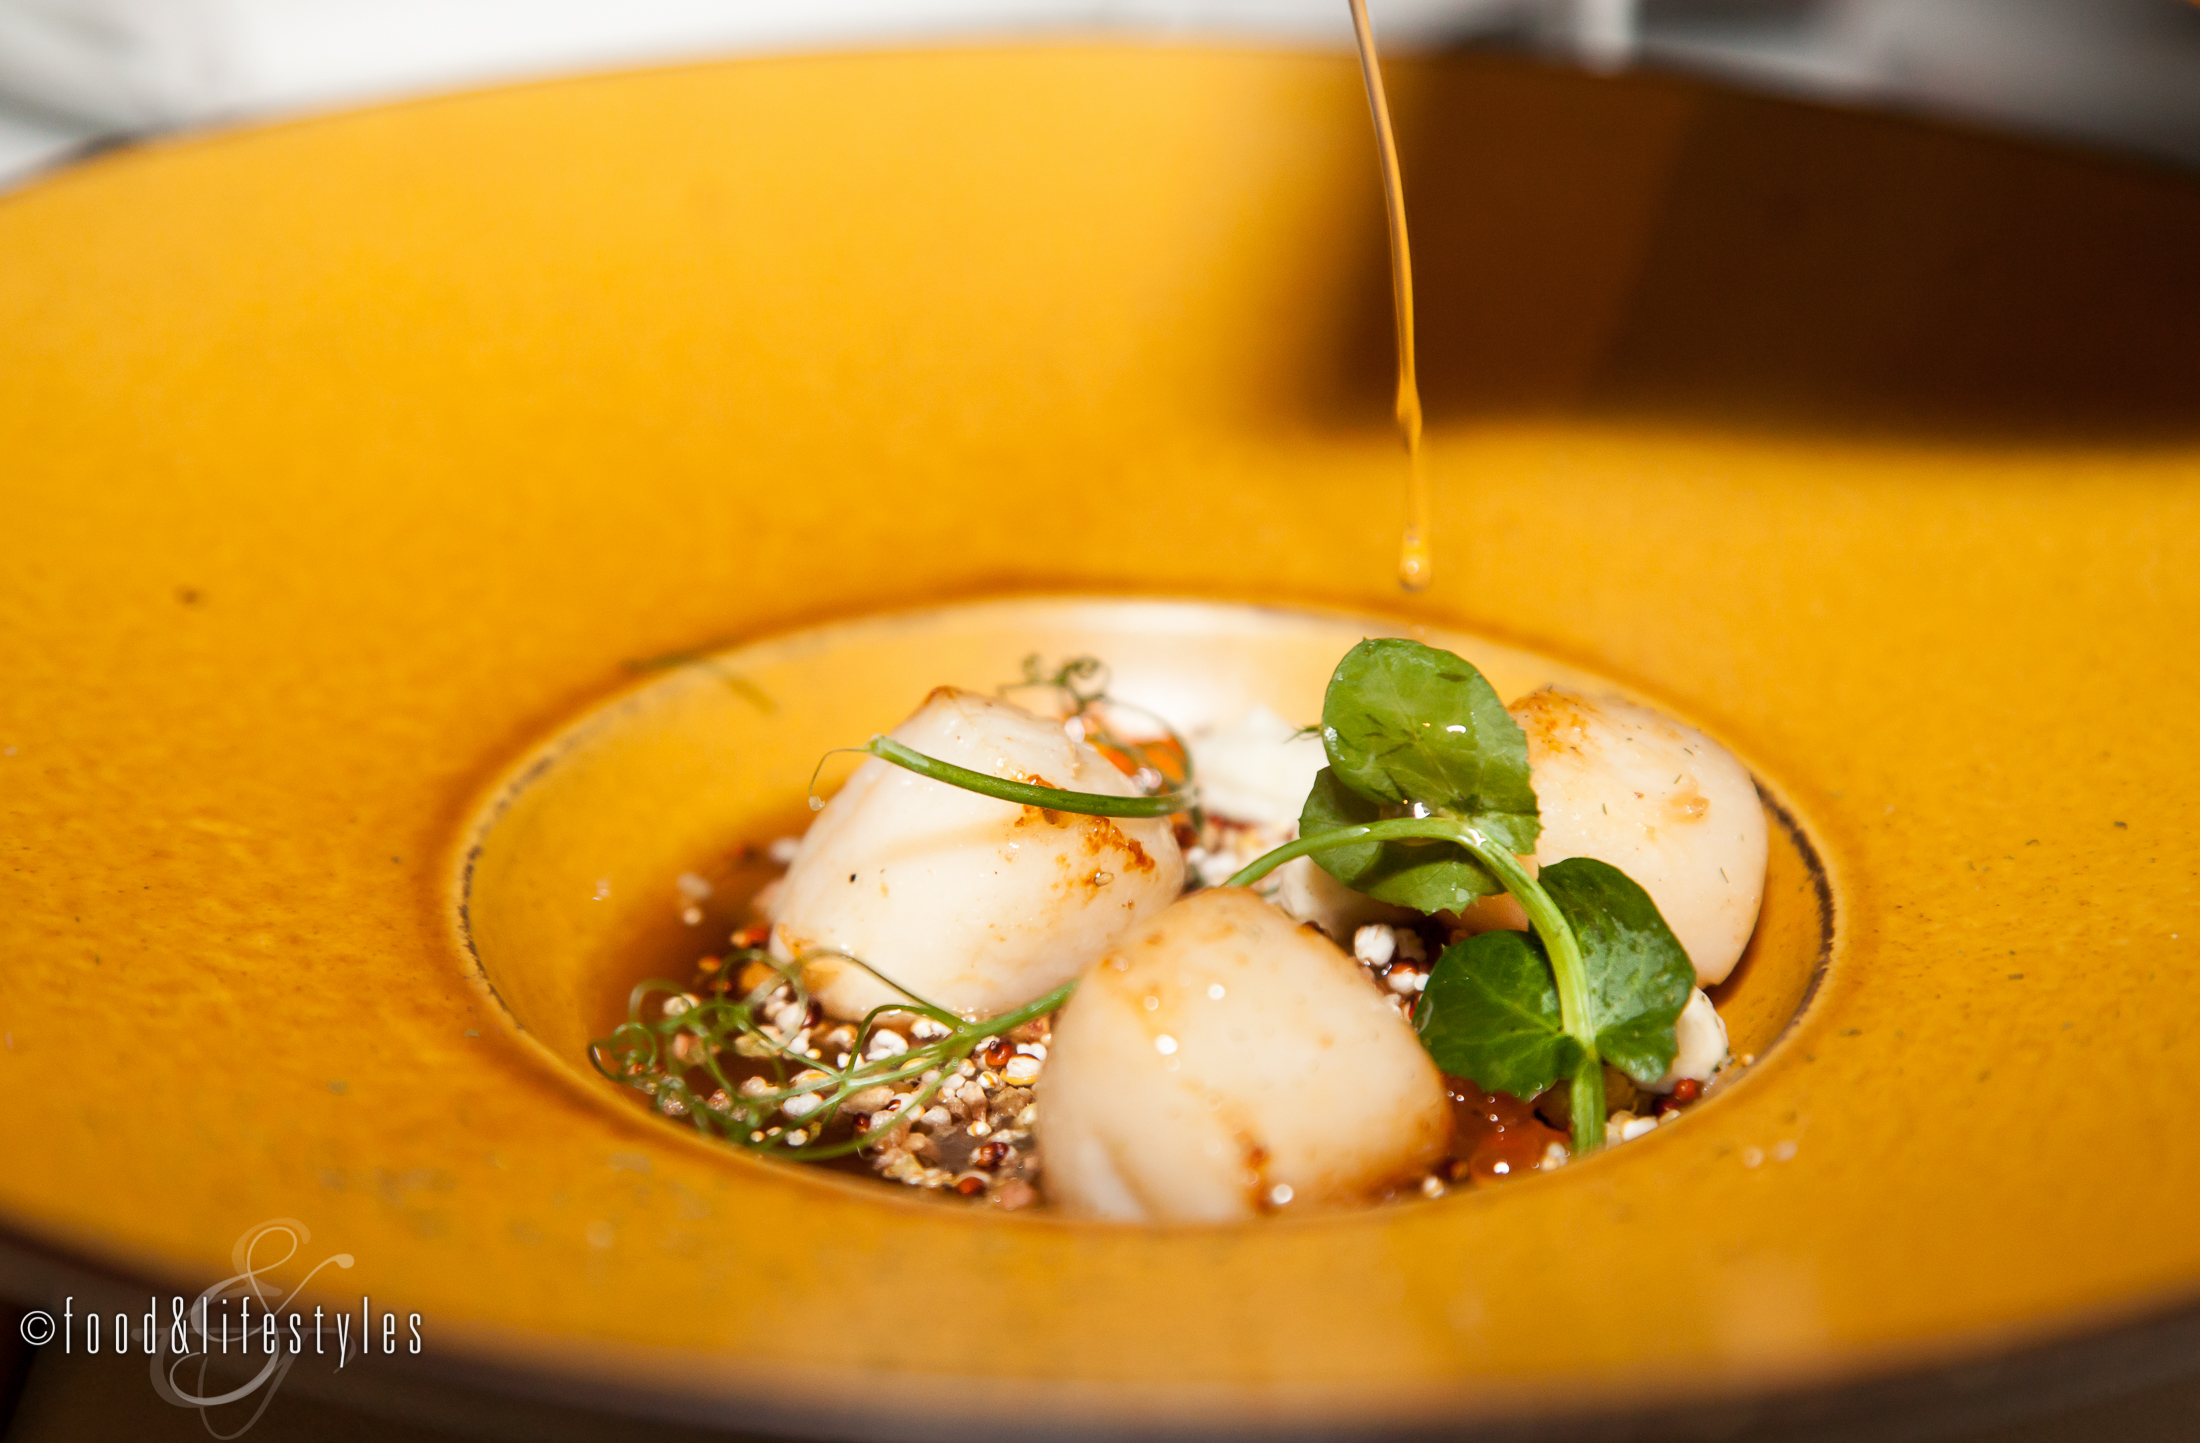 Nantucket Bay scallops with smoked trout and puffed grains